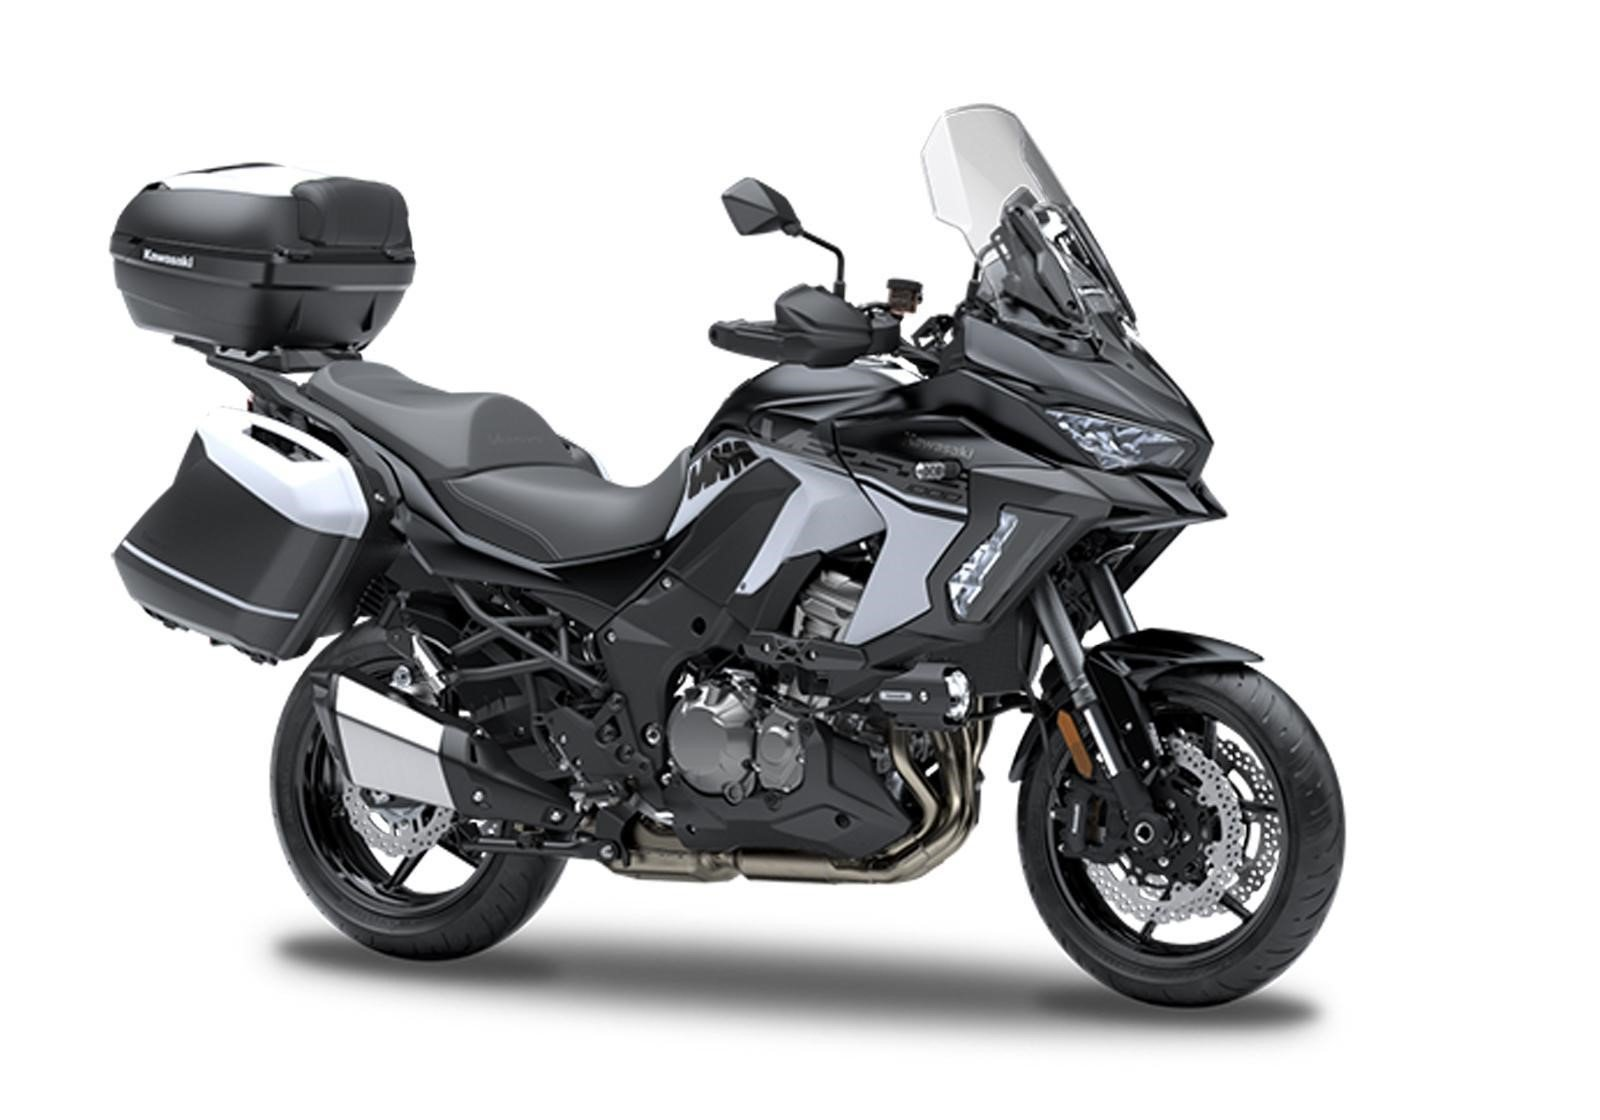 New 2019 Kawasaki Versys 1000 SE GT£1500 Paid,Free Delivery  For Sale (picture 1 of 6)